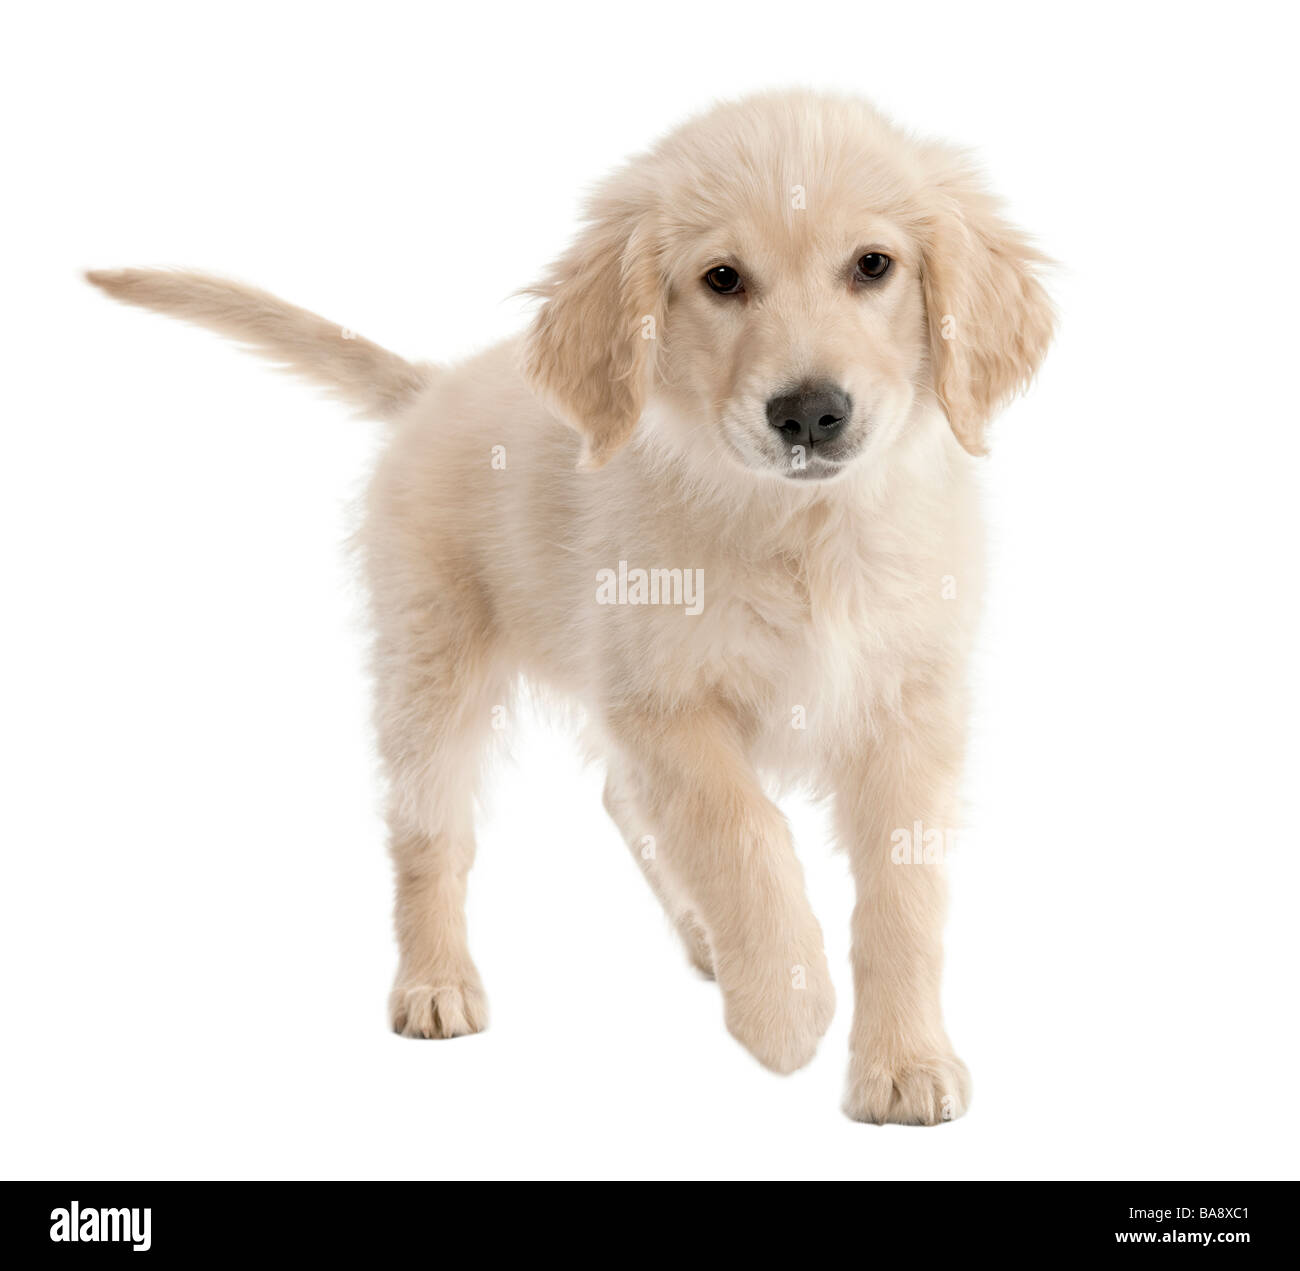 Golden Retriever puppy 4 months old in front of a white background - Stock Image